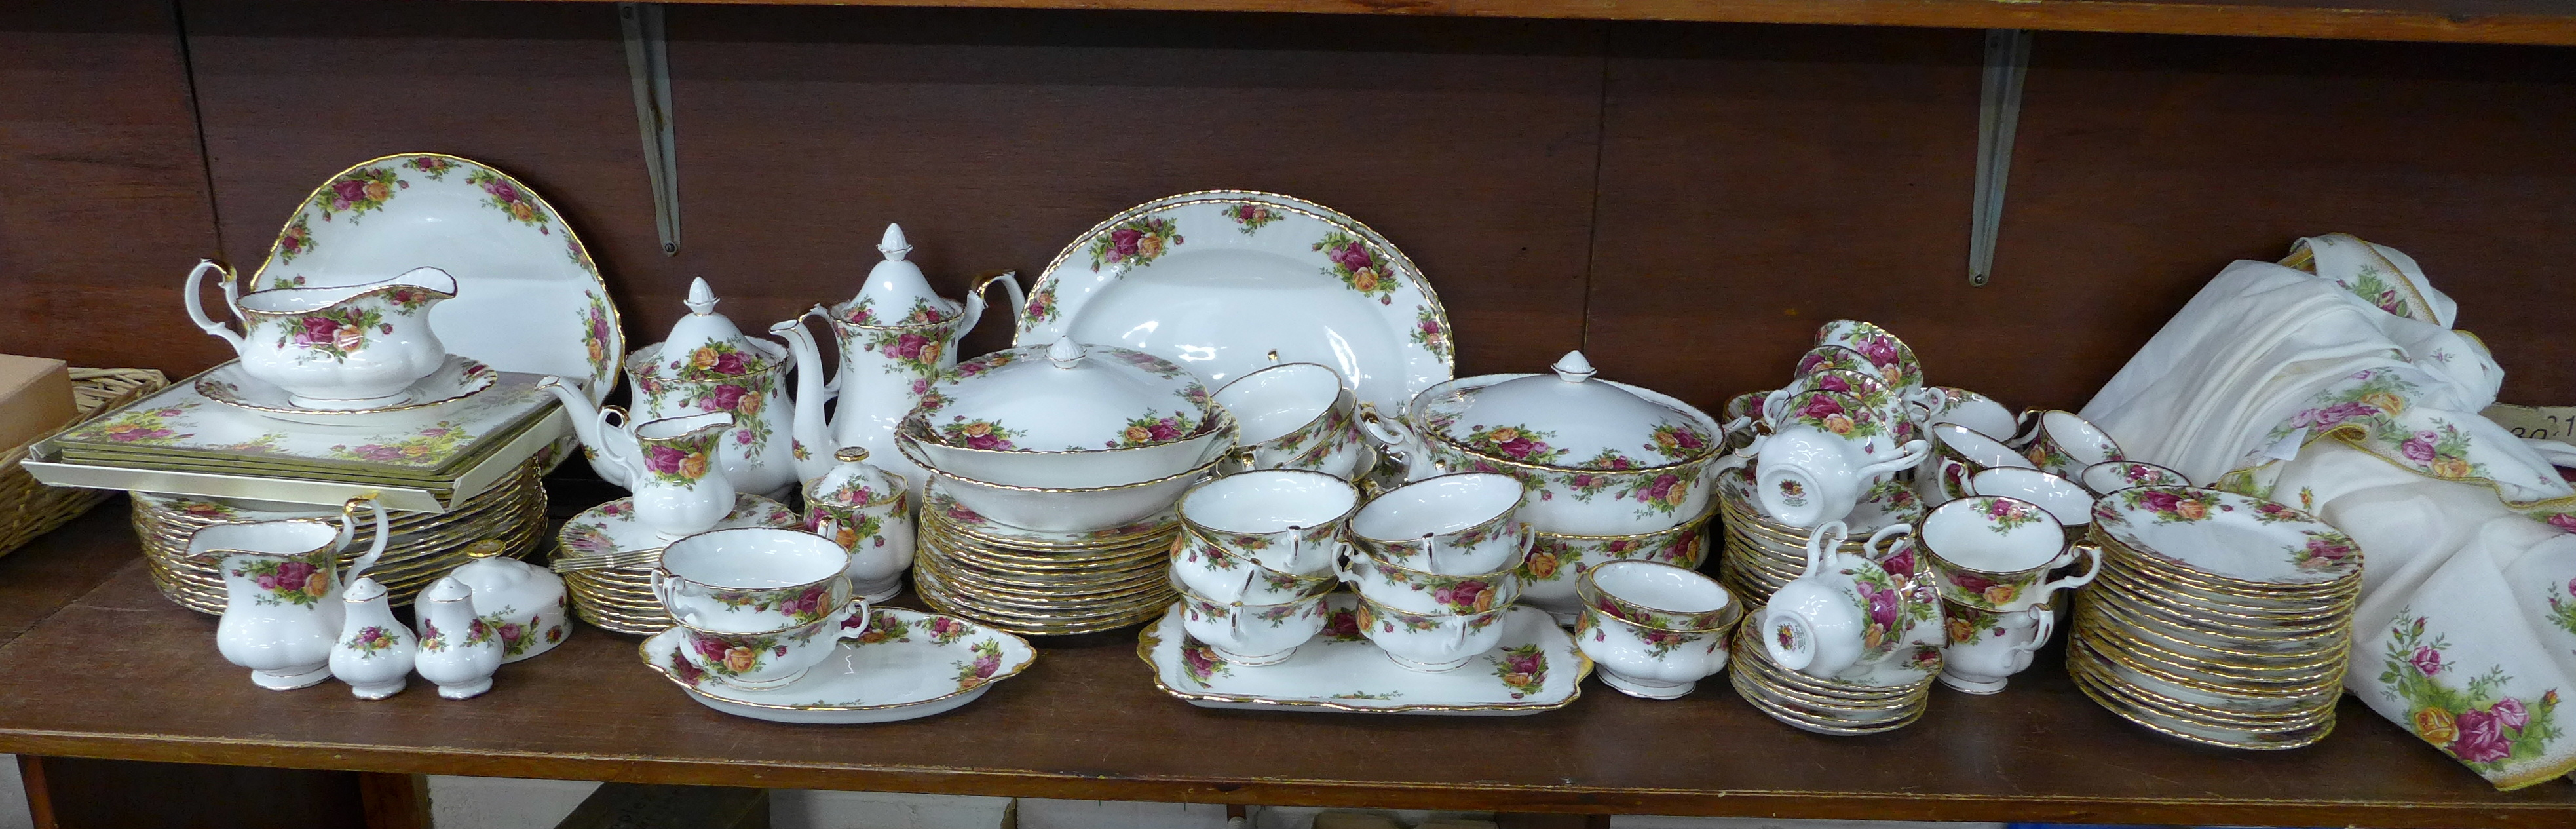 Lot 677 - A large quantity of Royal Albert Old Country Roses dinner and teaware, including coffee service,